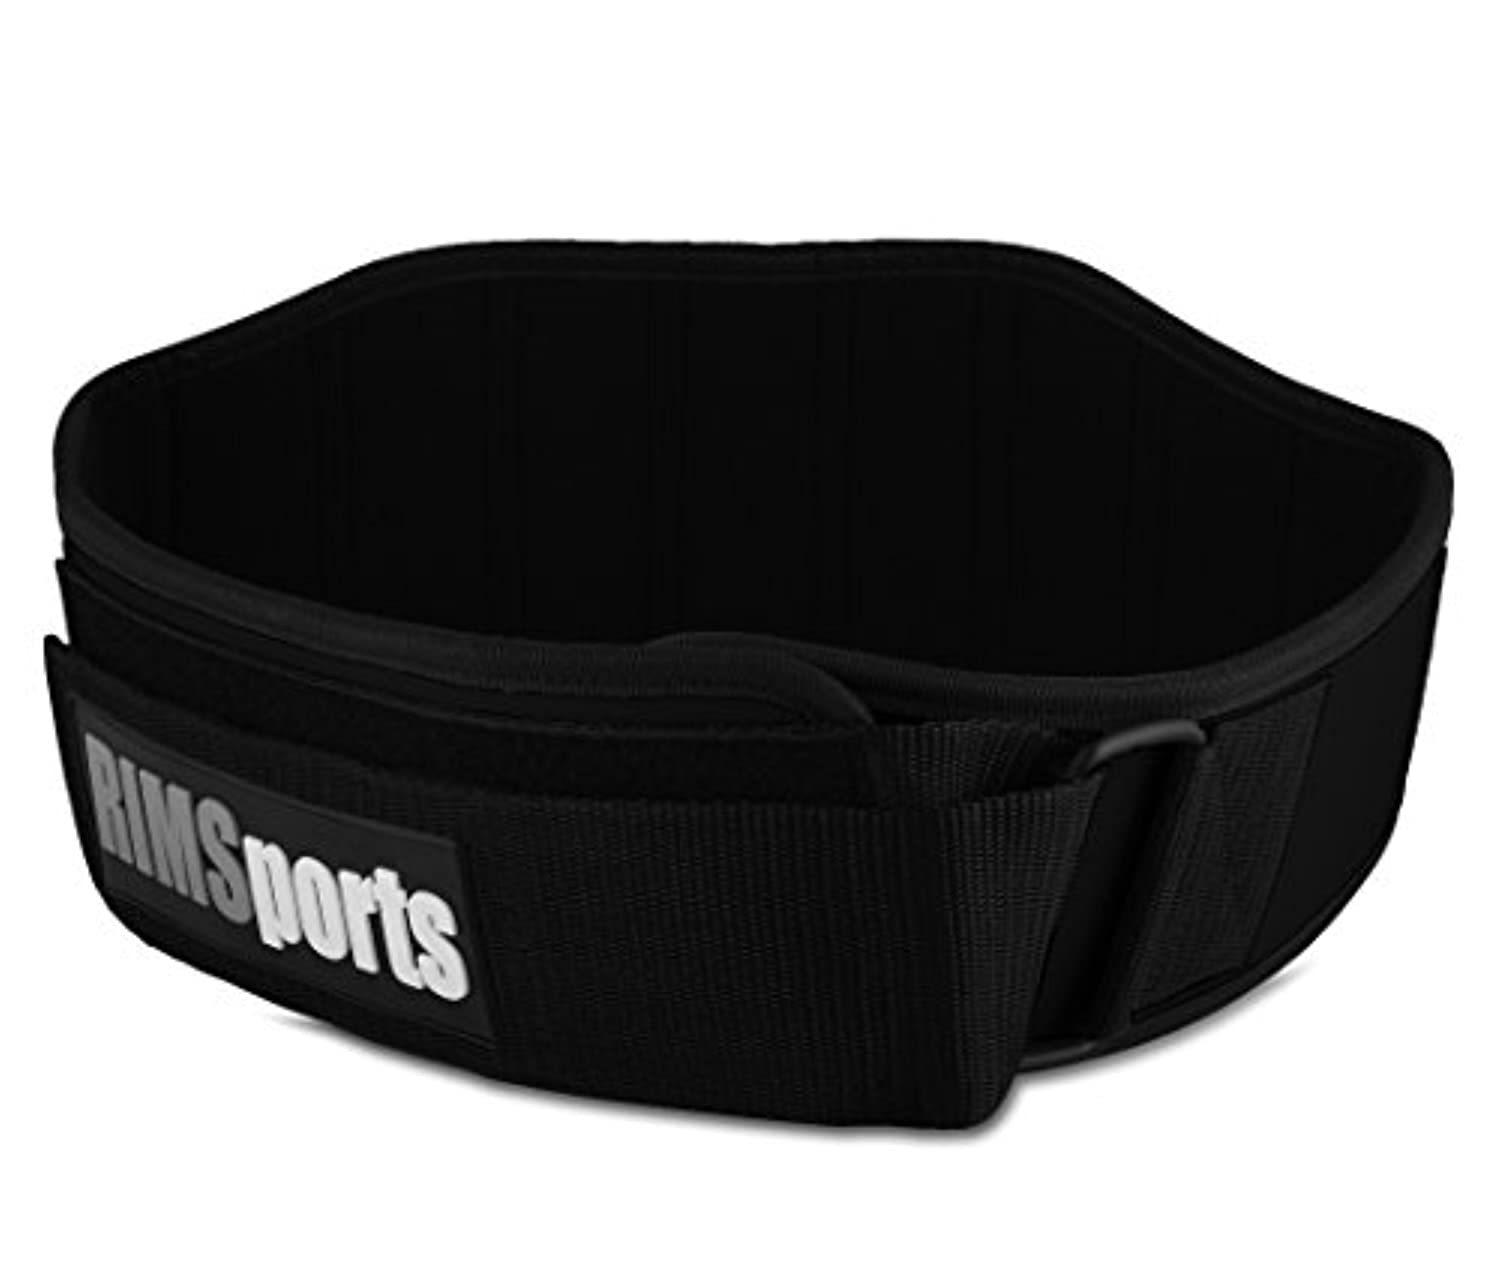 rim sports weightlifting belt